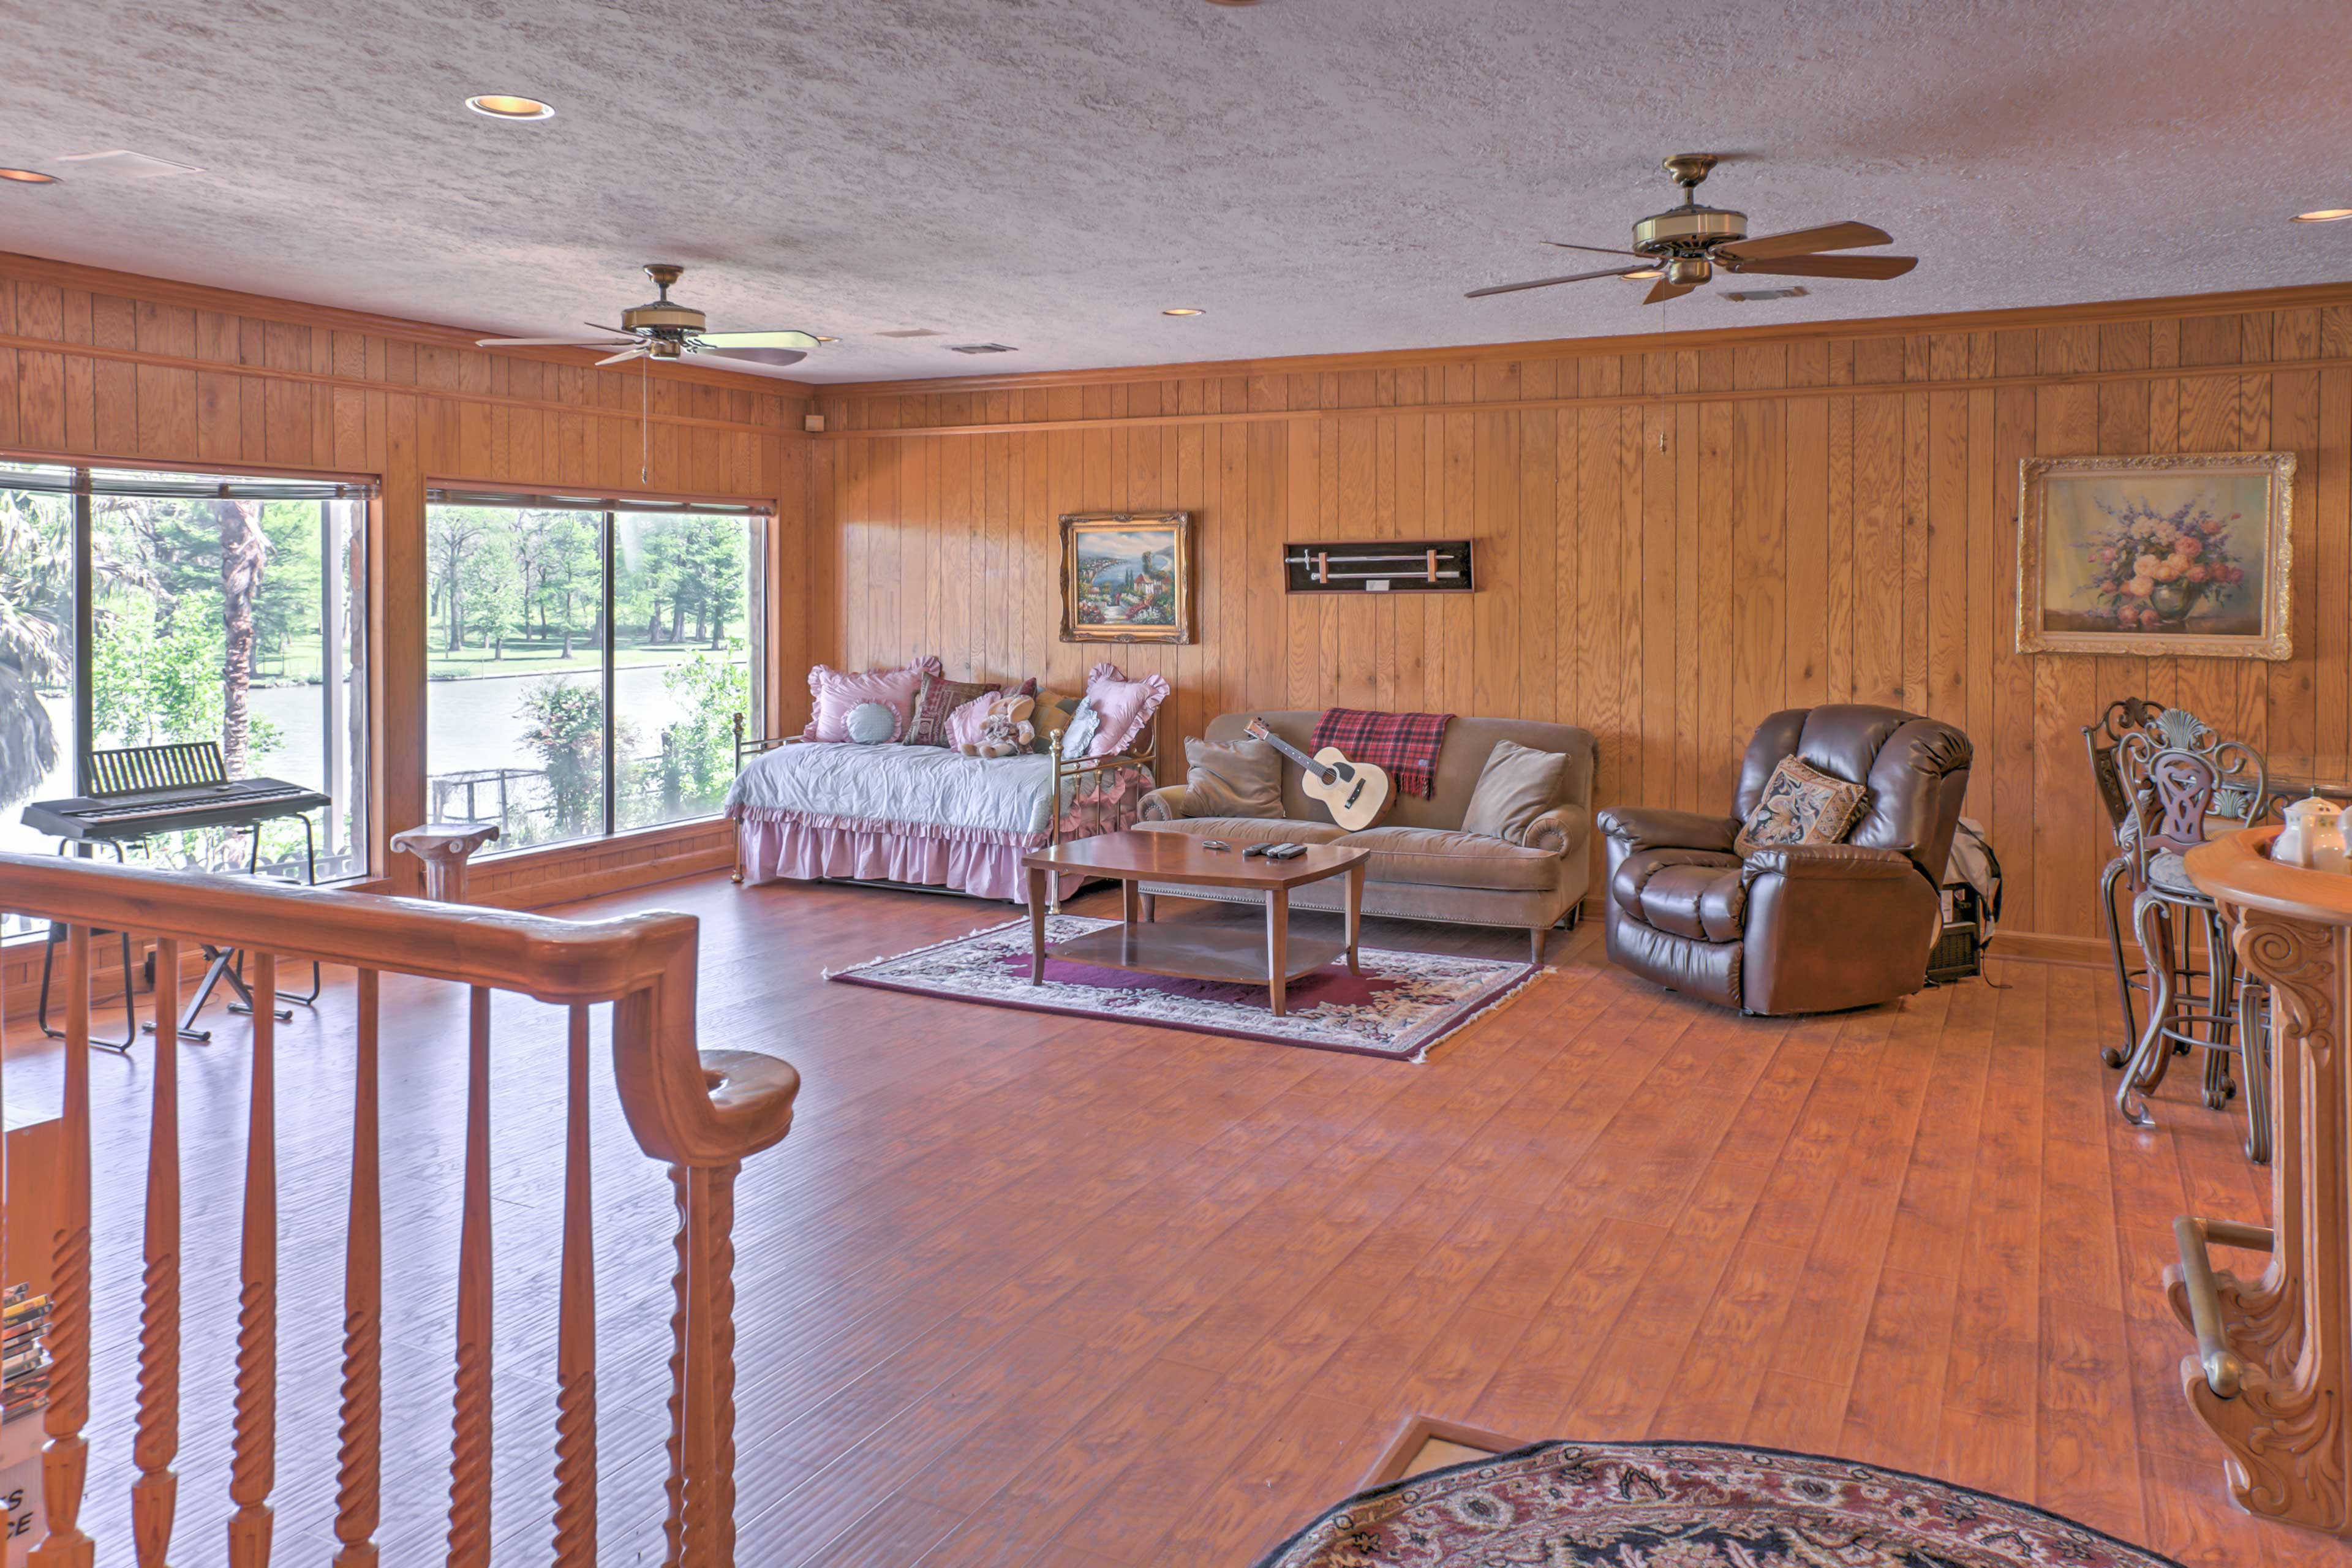 The family room features couch seating and a pull-out bed!